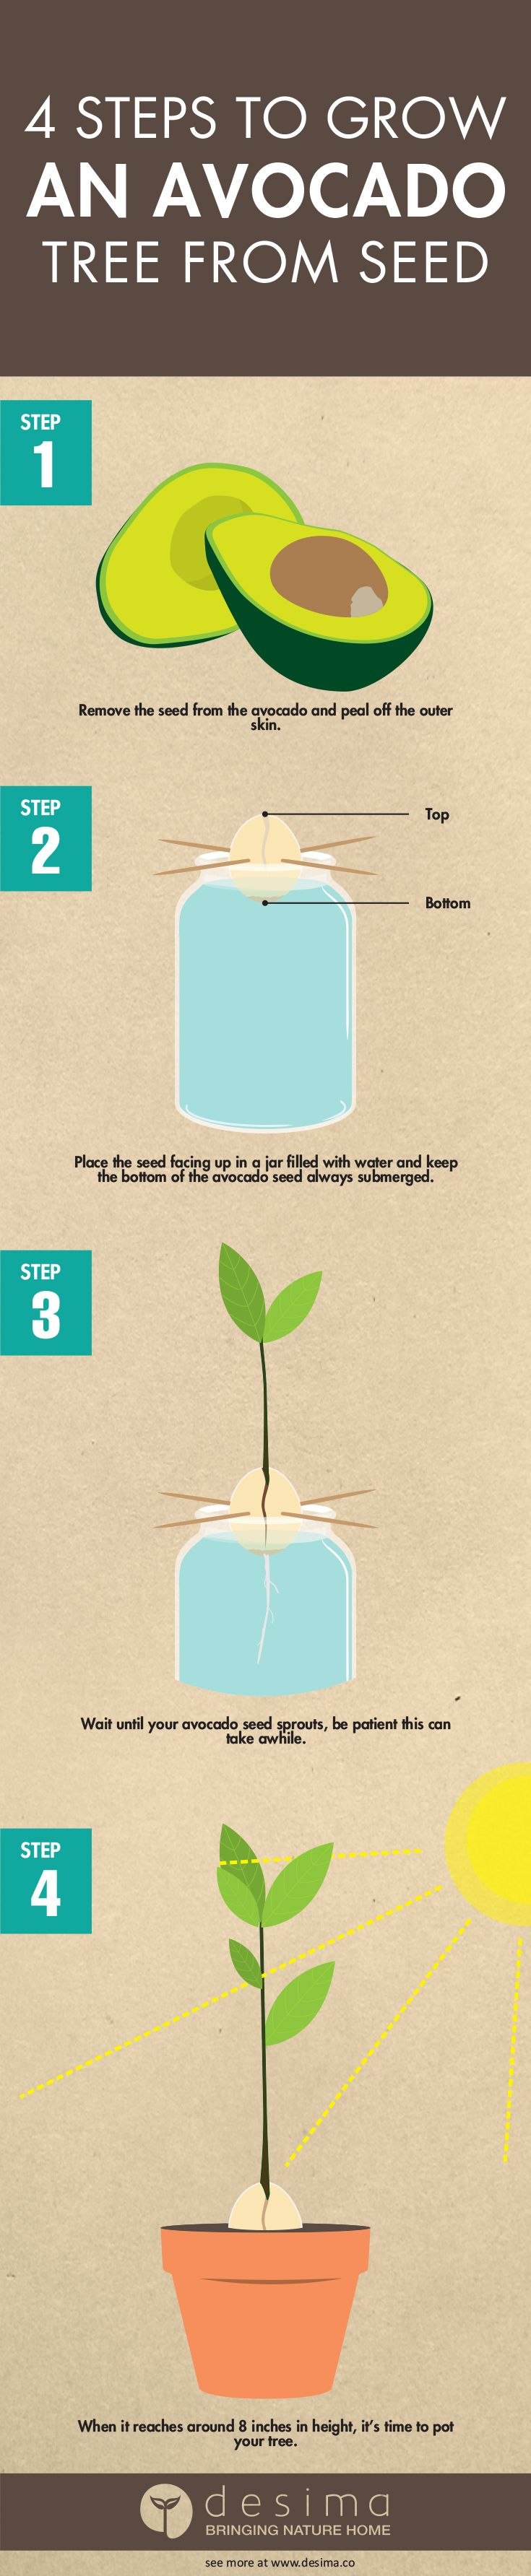 25 best ideas about avocado tree on pinterest growing for How do you grow an avocado seed